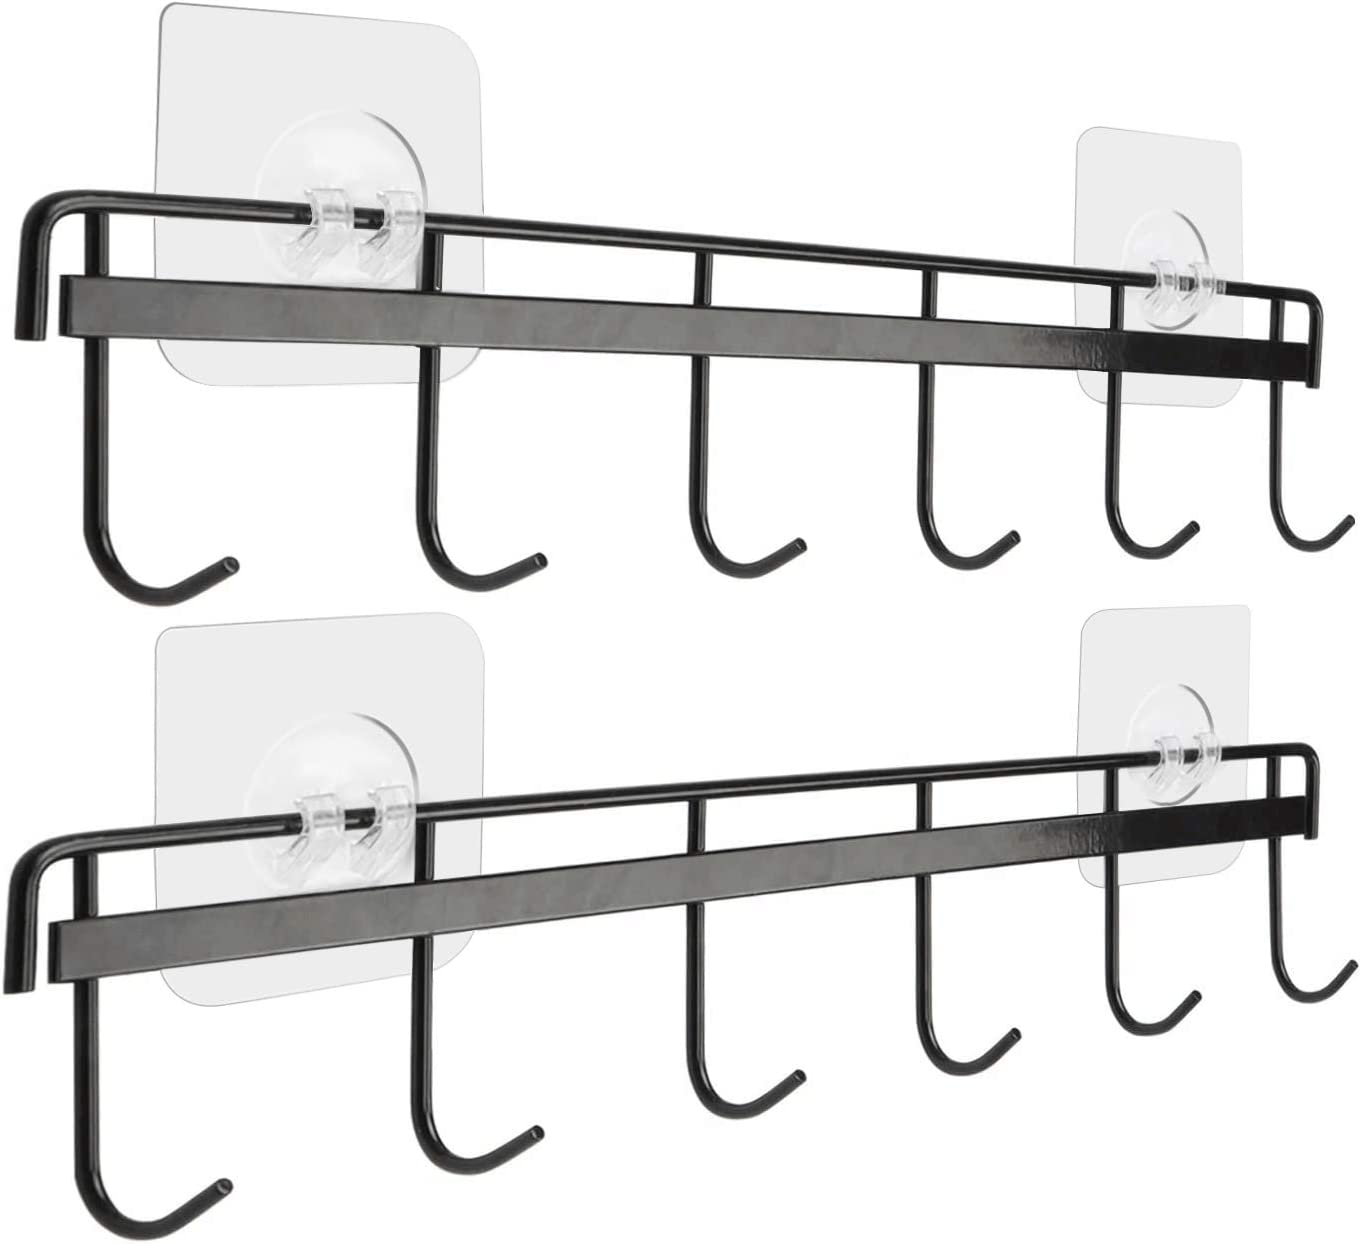 Yizhi Adhesive Wall Hooks Rack Kitchen Rail, Space Saving Utensil Holder No Drilling Wall Mounted Accessory Hanger with 6 Hooks for Kitchen Bathroom Bedroom Pack of 2 (Black)